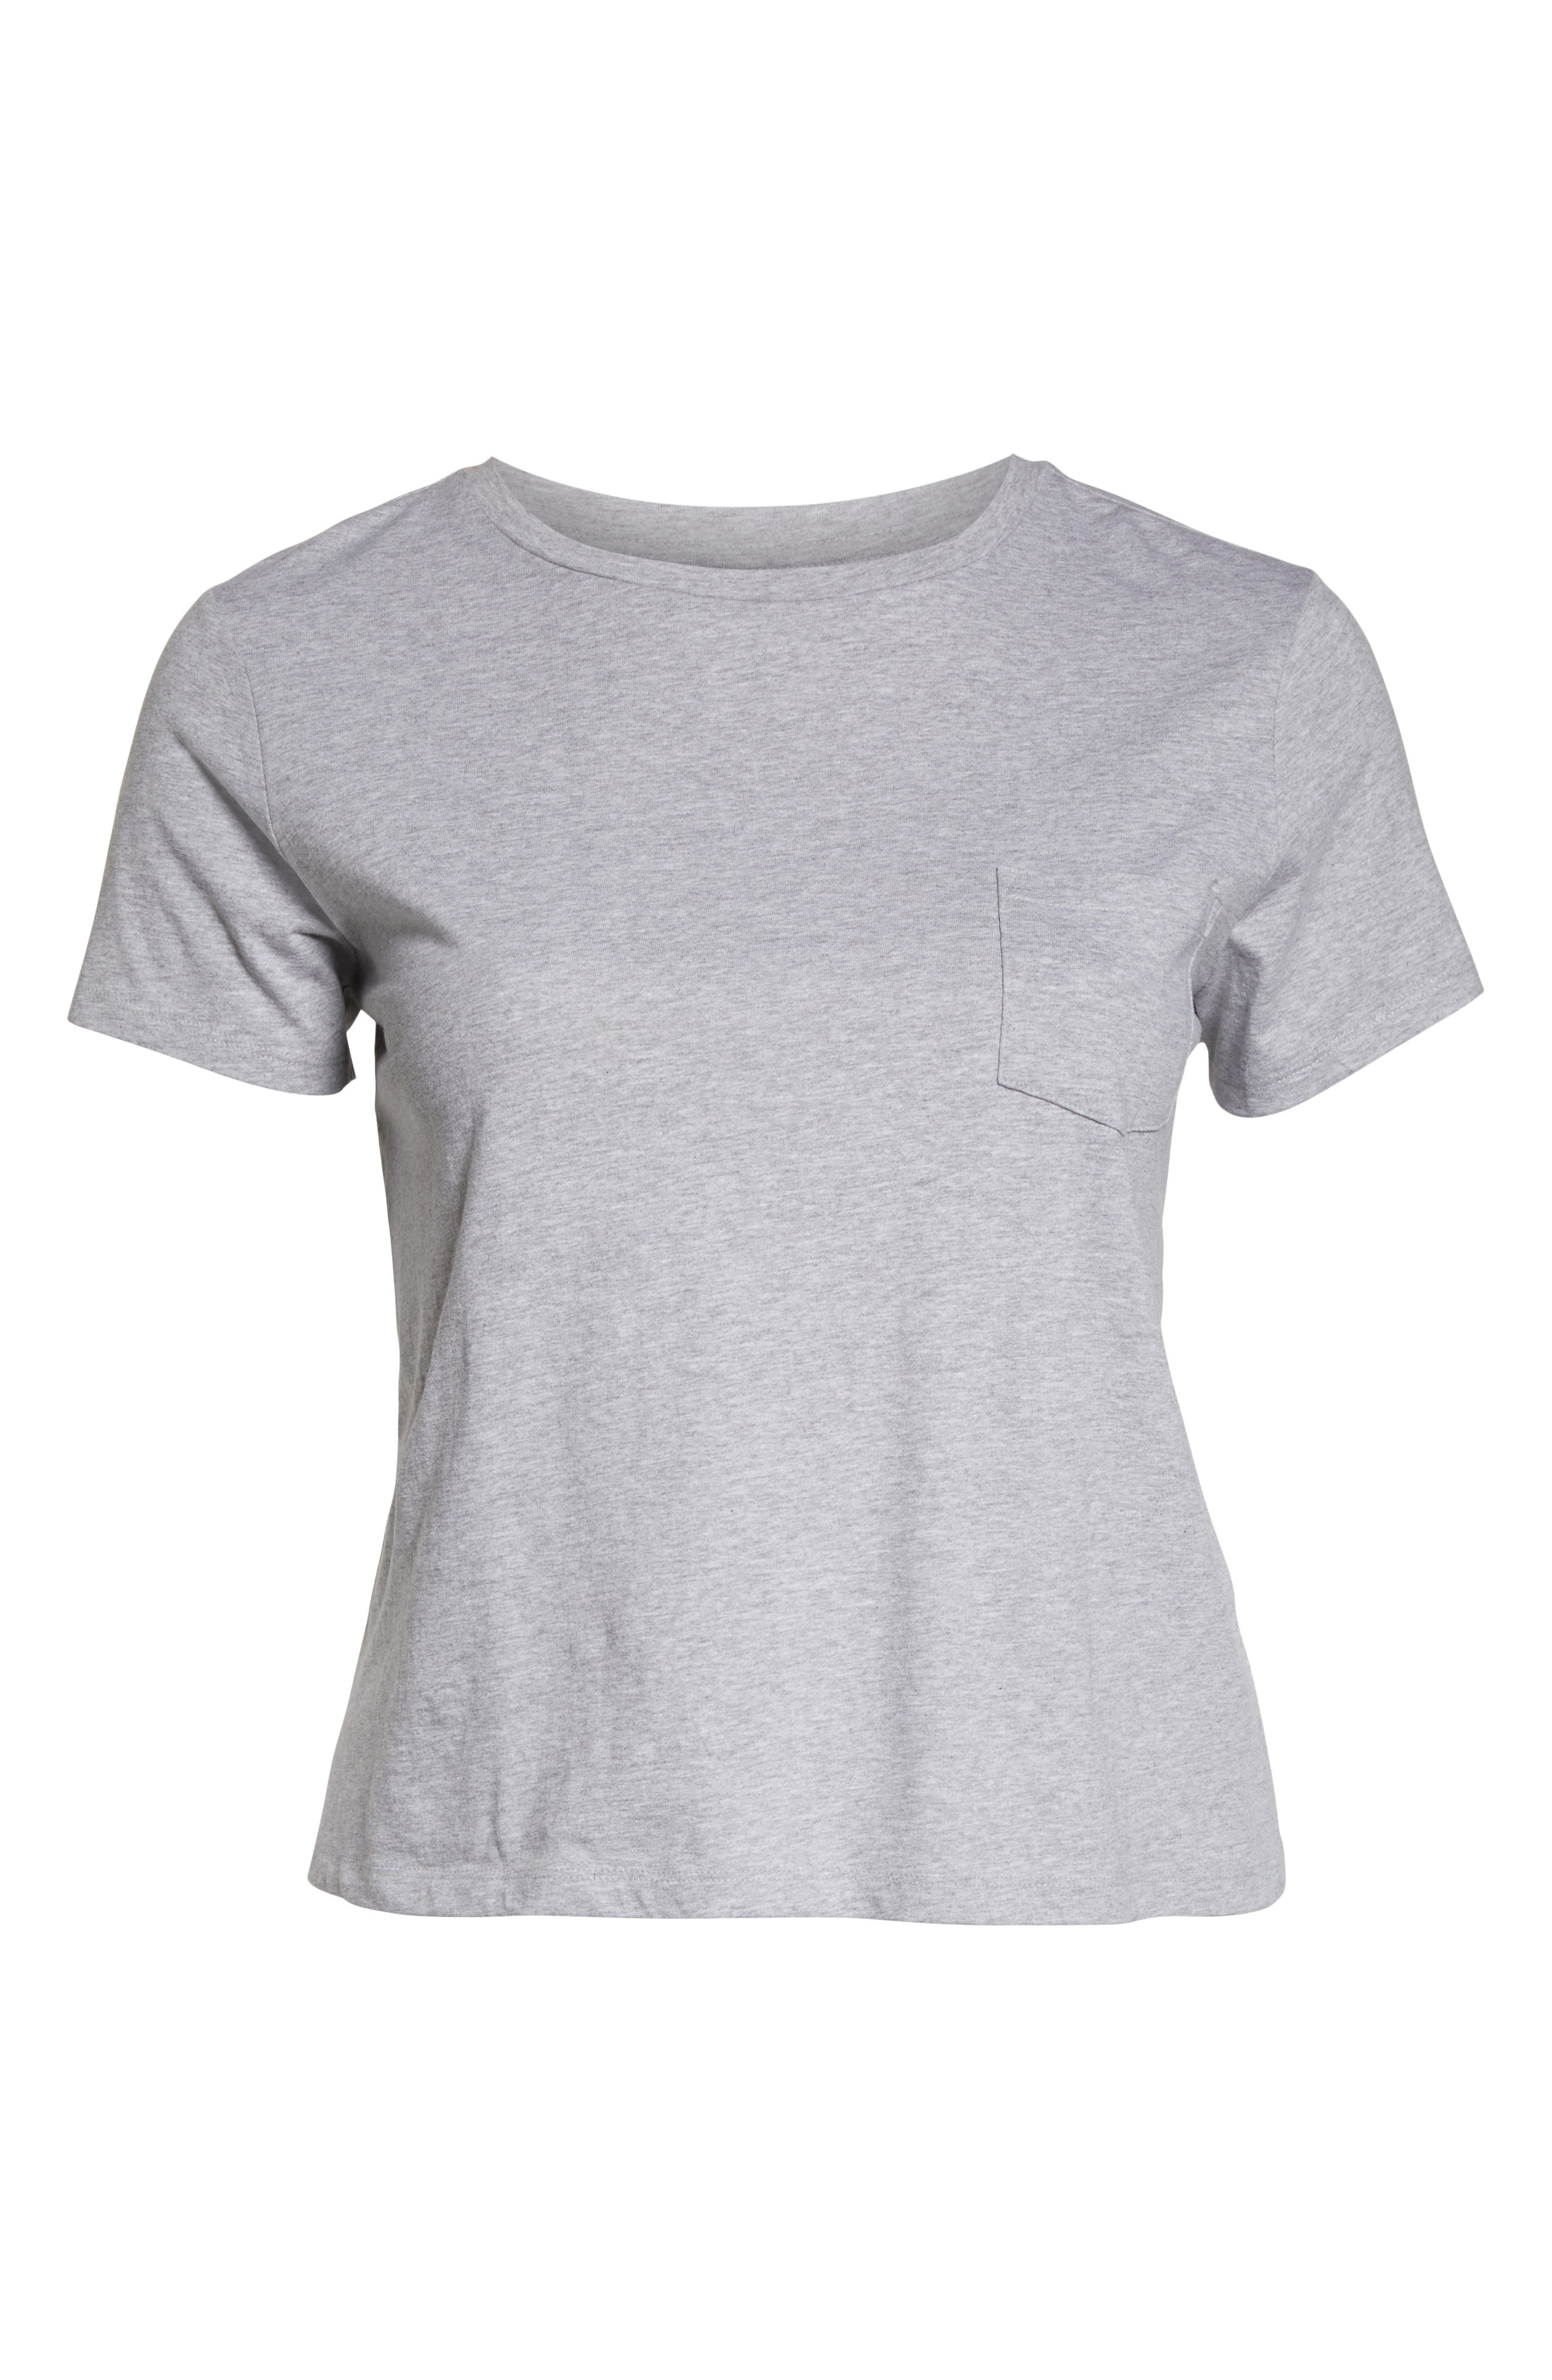 Pocket Crewneck Tee,                             Alternate thumbnail 6, color,                             GREY PEARL HEATHER